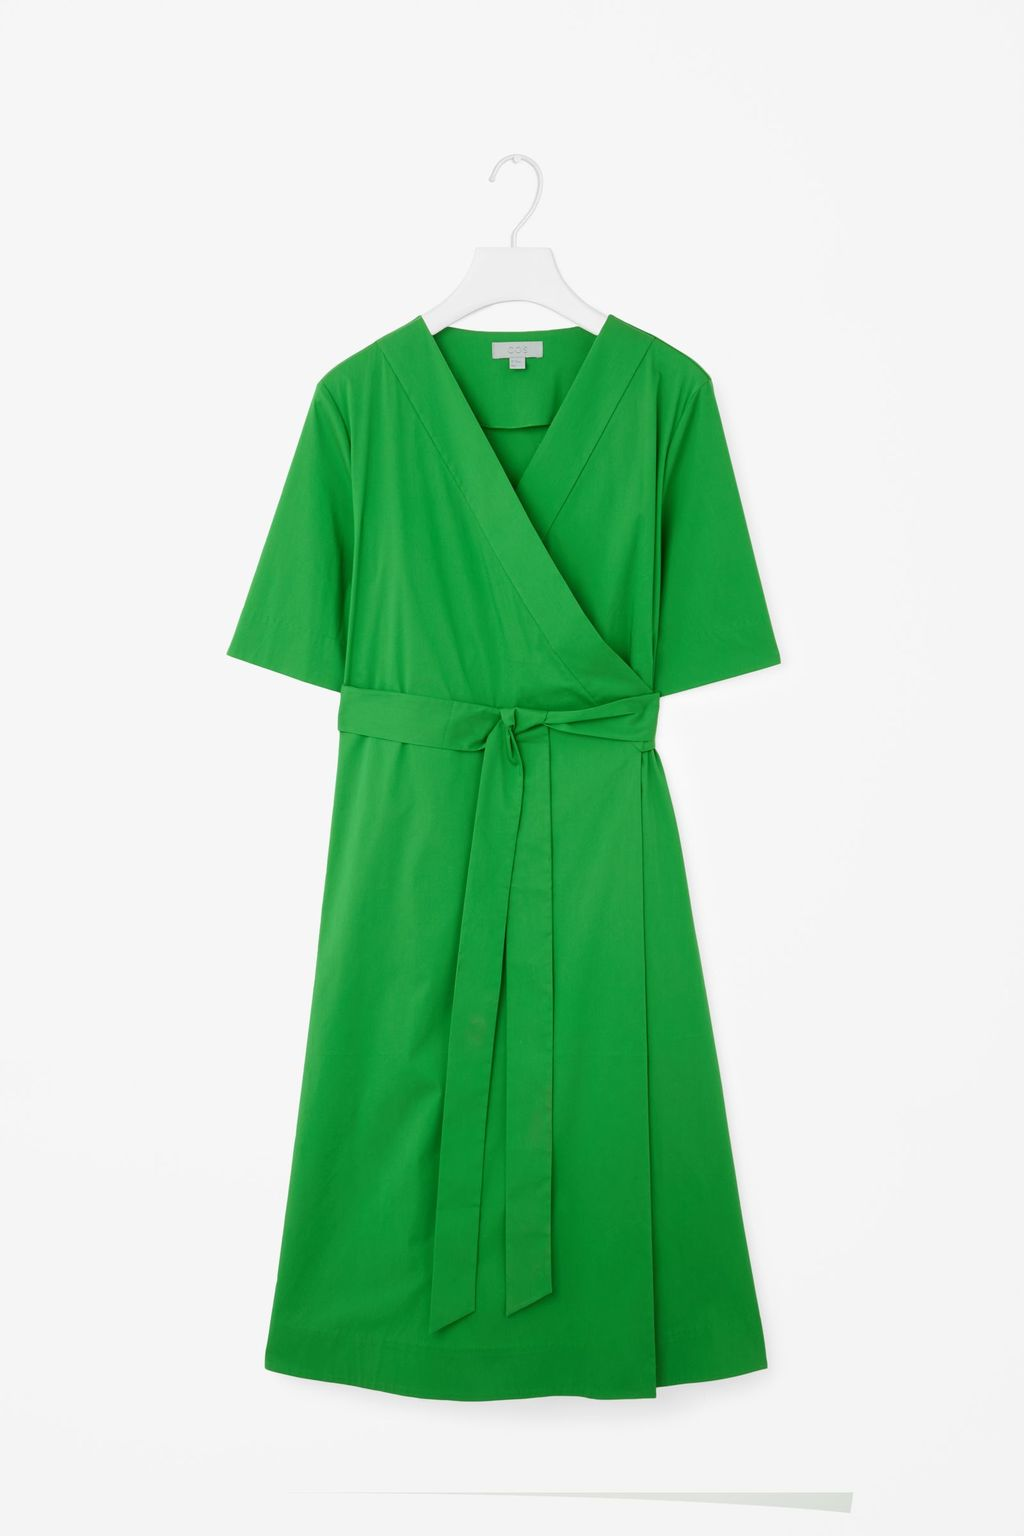 Wrap Over Dress - style: faux wrap/wrap; neckline: v-neck; pattern: plain; predominant colour: emerald green; occasions: evening; length: on the knee; fit: body skimming; fibres: cotton - stretch; sleeve length: short sleeve; sleeve style: standard; pattern type: fabric; texture group: other - light to midweight; season: s/s 2016; wardrobe: event